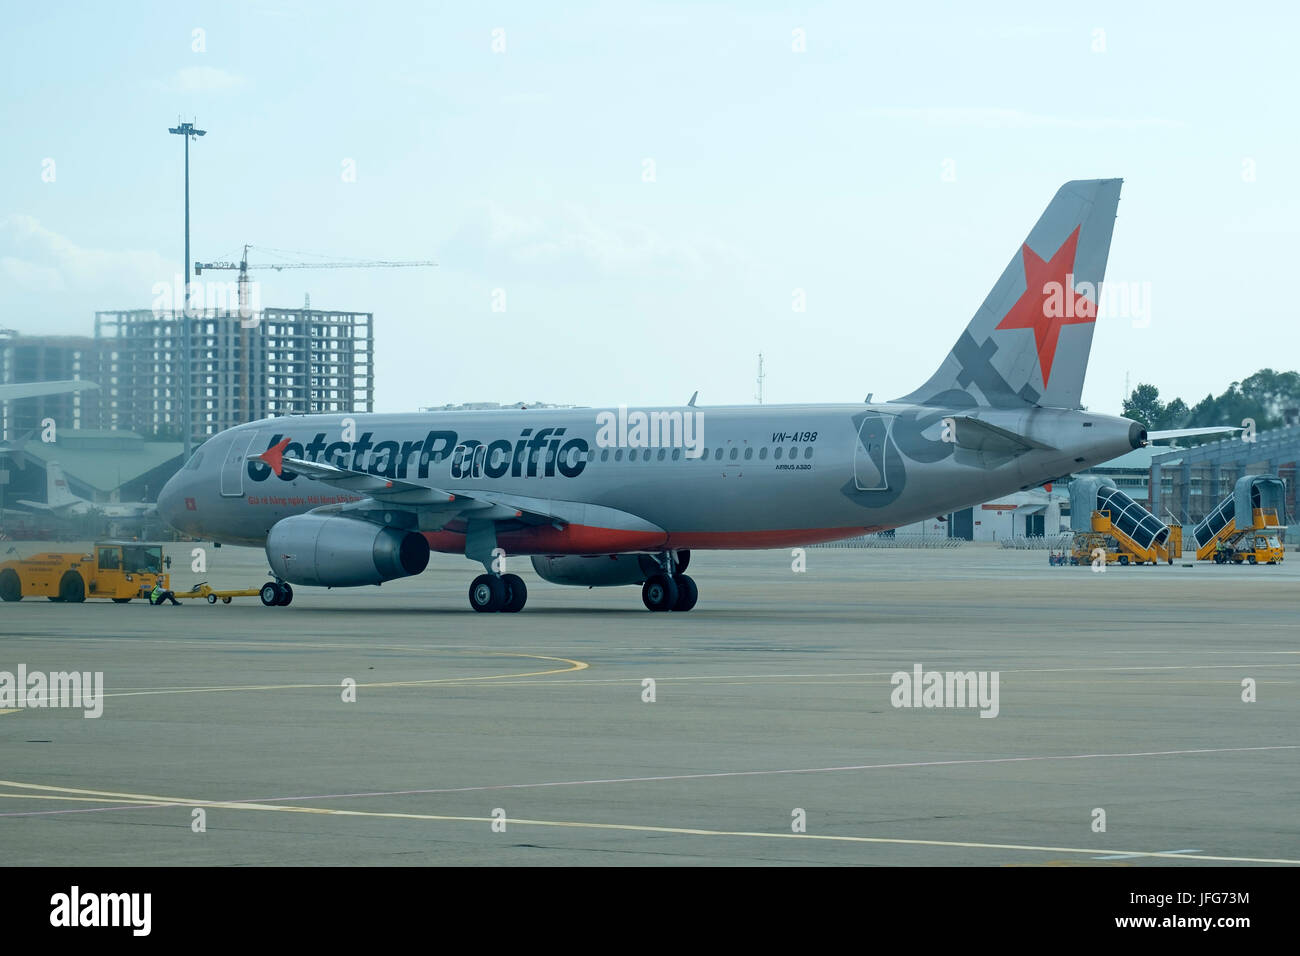 Jetstar pacific airlines boeing a320 airplane stock photo royalty jetstar pacific airlines boeing a320 airplane sciox Images